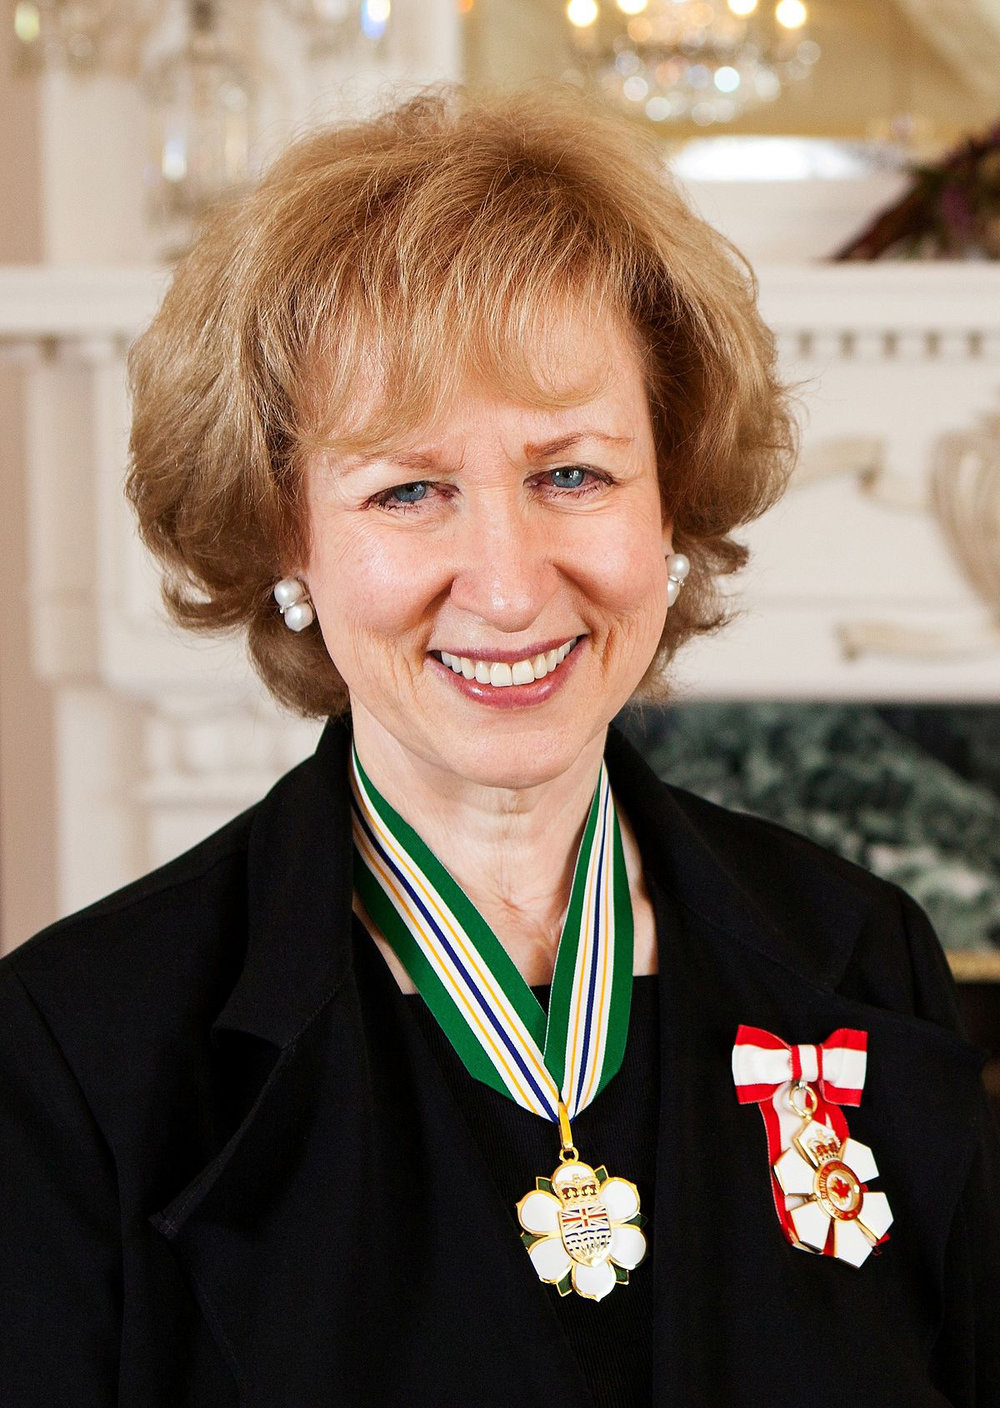 Kim Campbell served as Canada's 19th and first female prime minister for four months in 1993 after she won the Conservative Party leadership race to succeed Brian Mulroney. In January 1993 Campbell was transferred to the posts of Minister of National Defence and Minister of Veterans Affairs from Justice. During this period, she had to deal with the contentious Sea King replacement project as well as the emerging Somalia Affair. (simon fraser university)